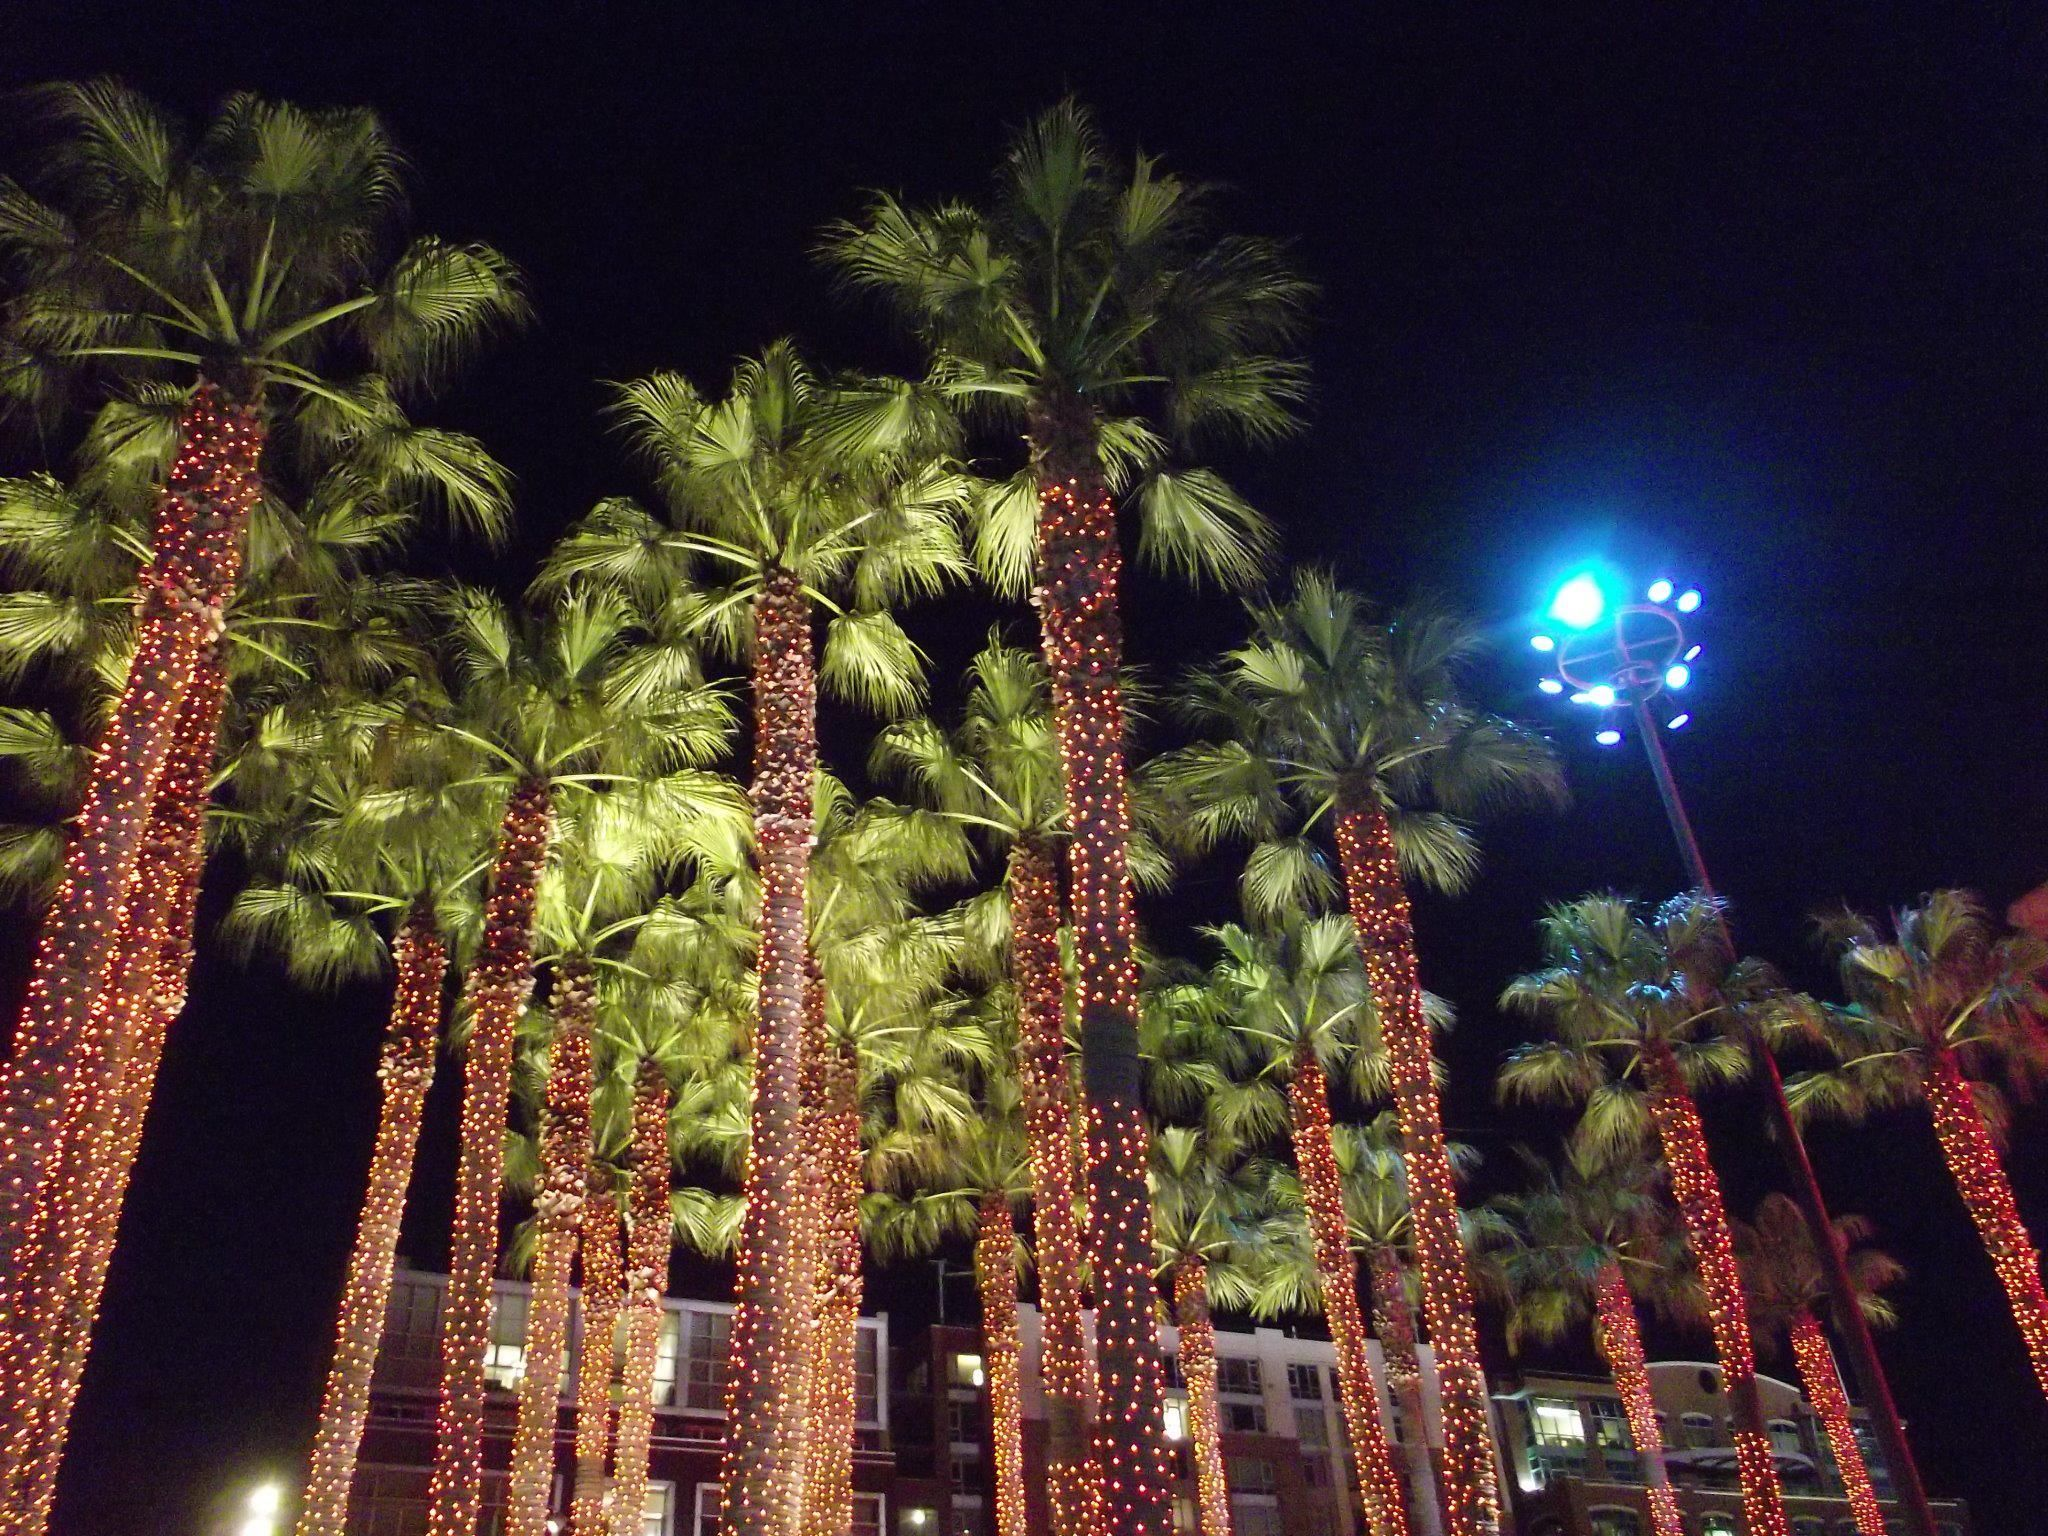 I took this photo of the palm trees at ATT ballpark at night!